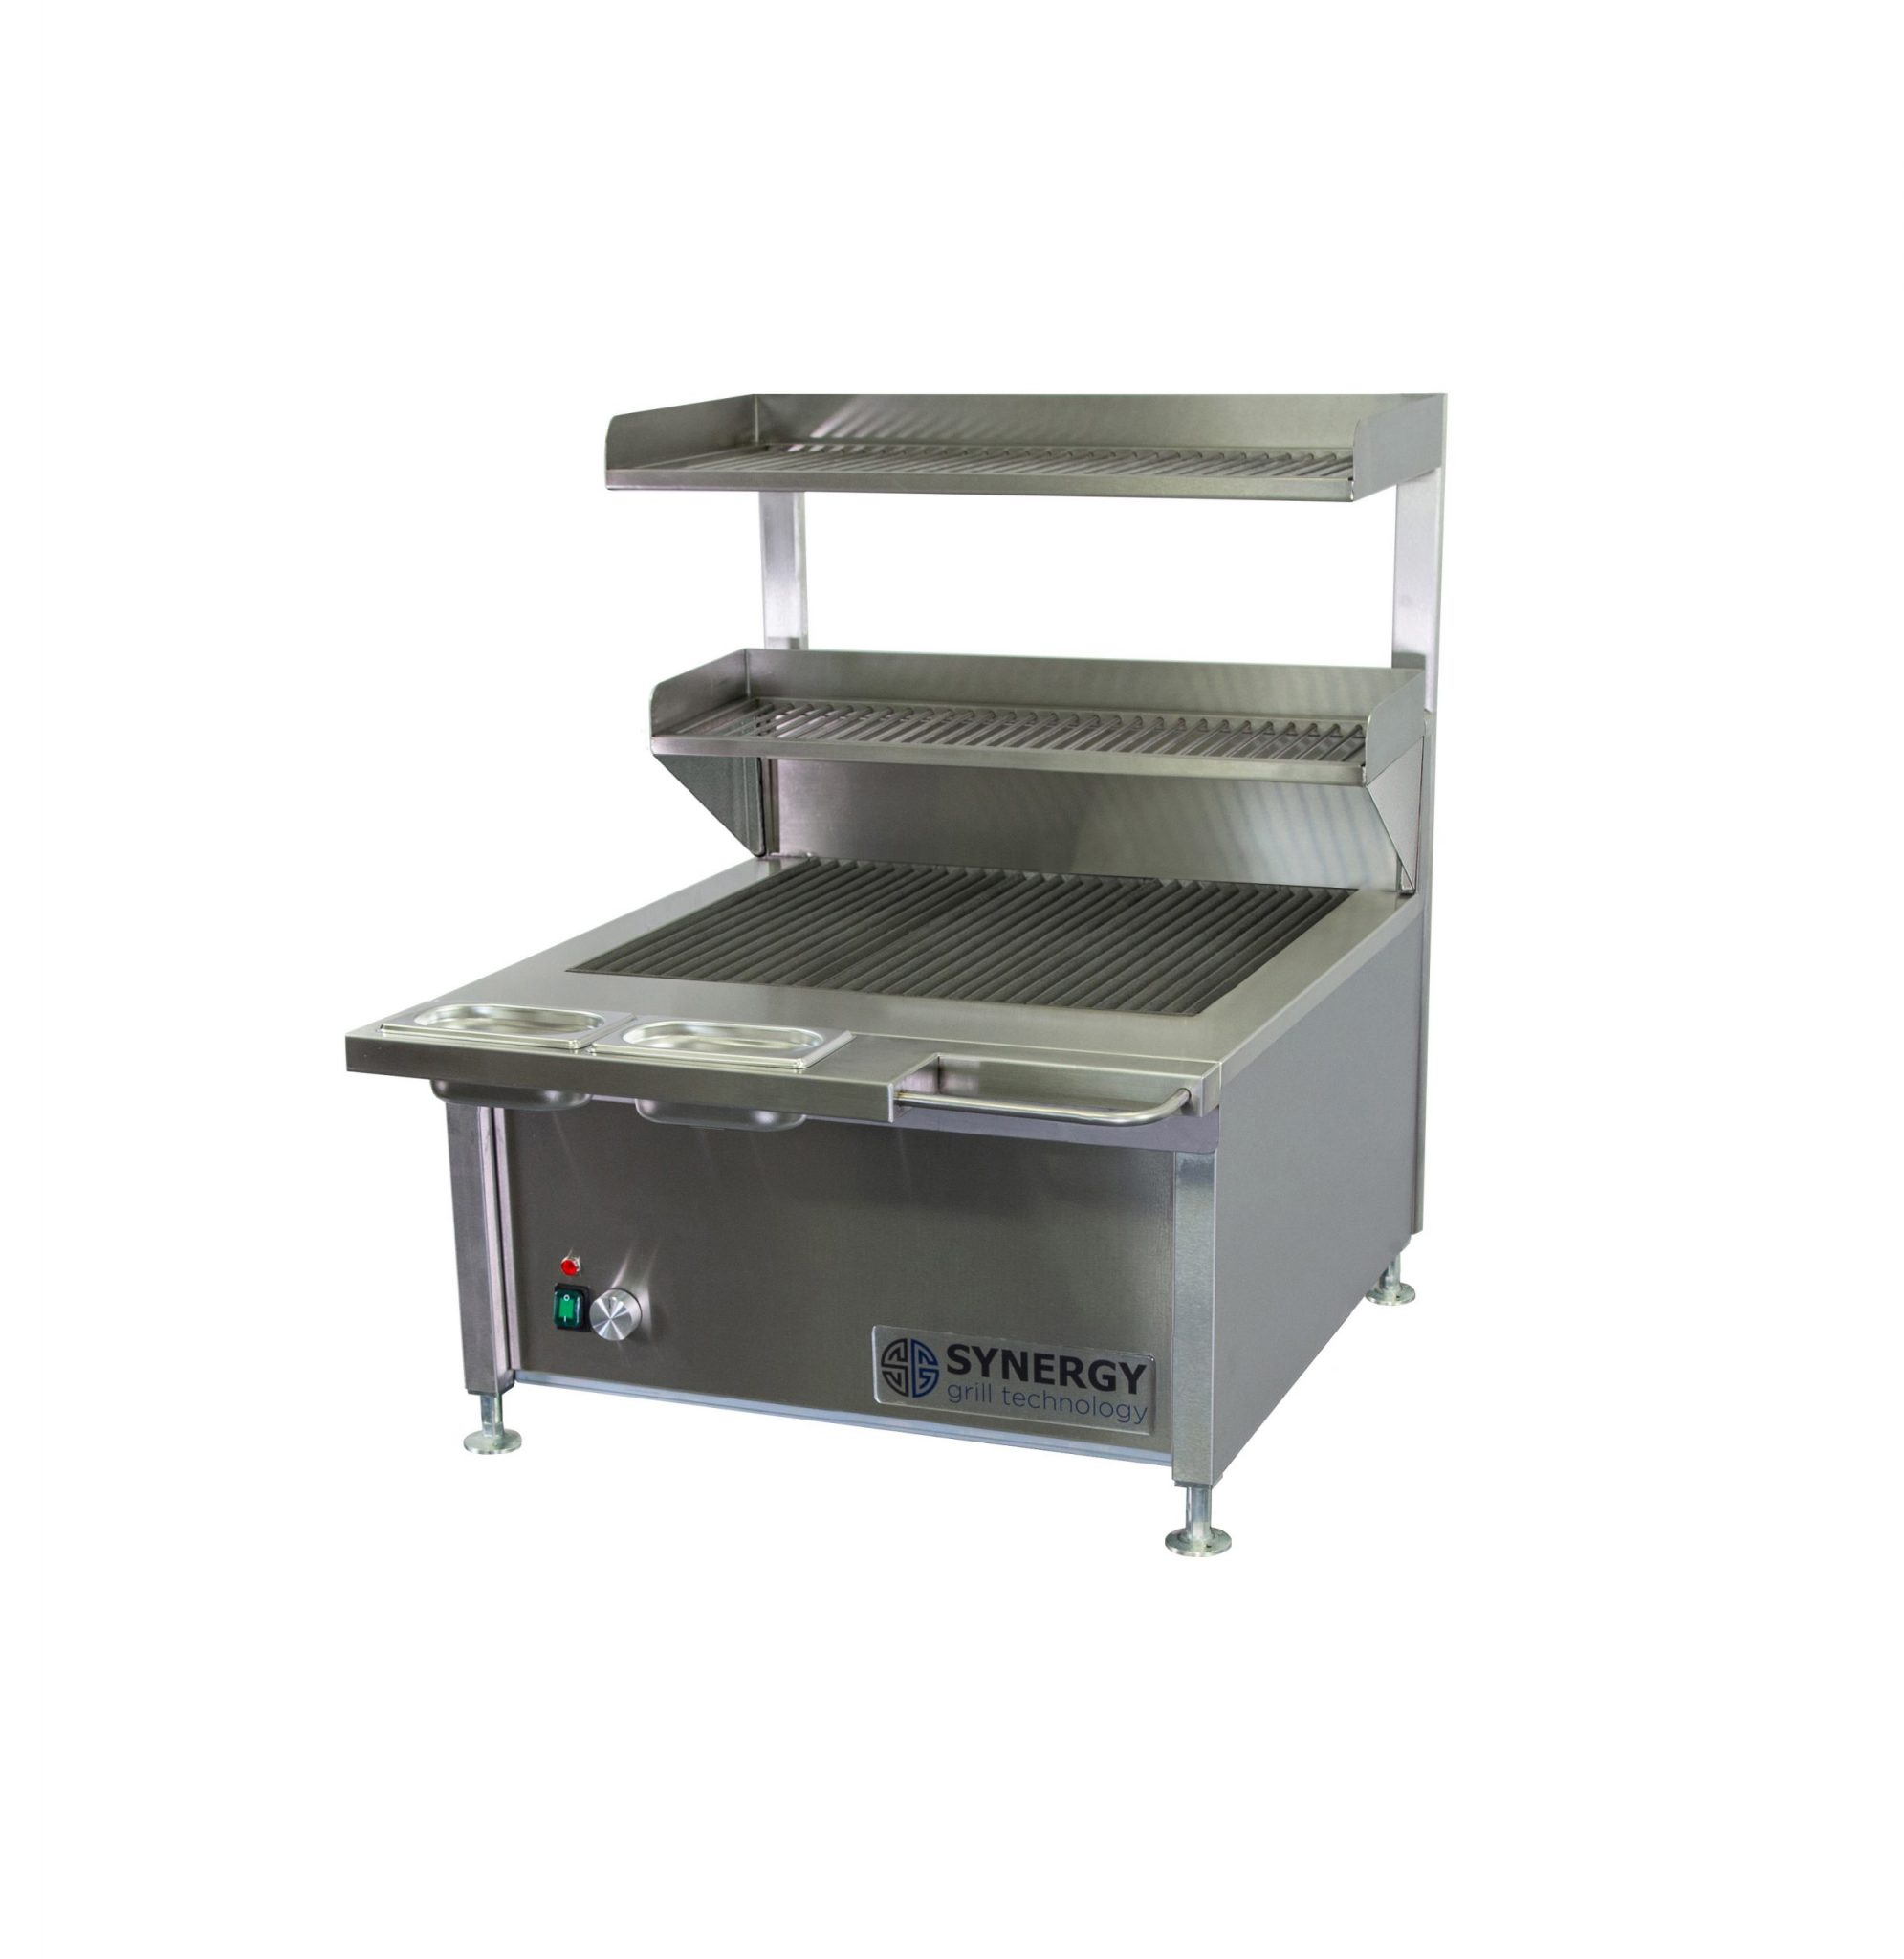 Synergy Grill ST630